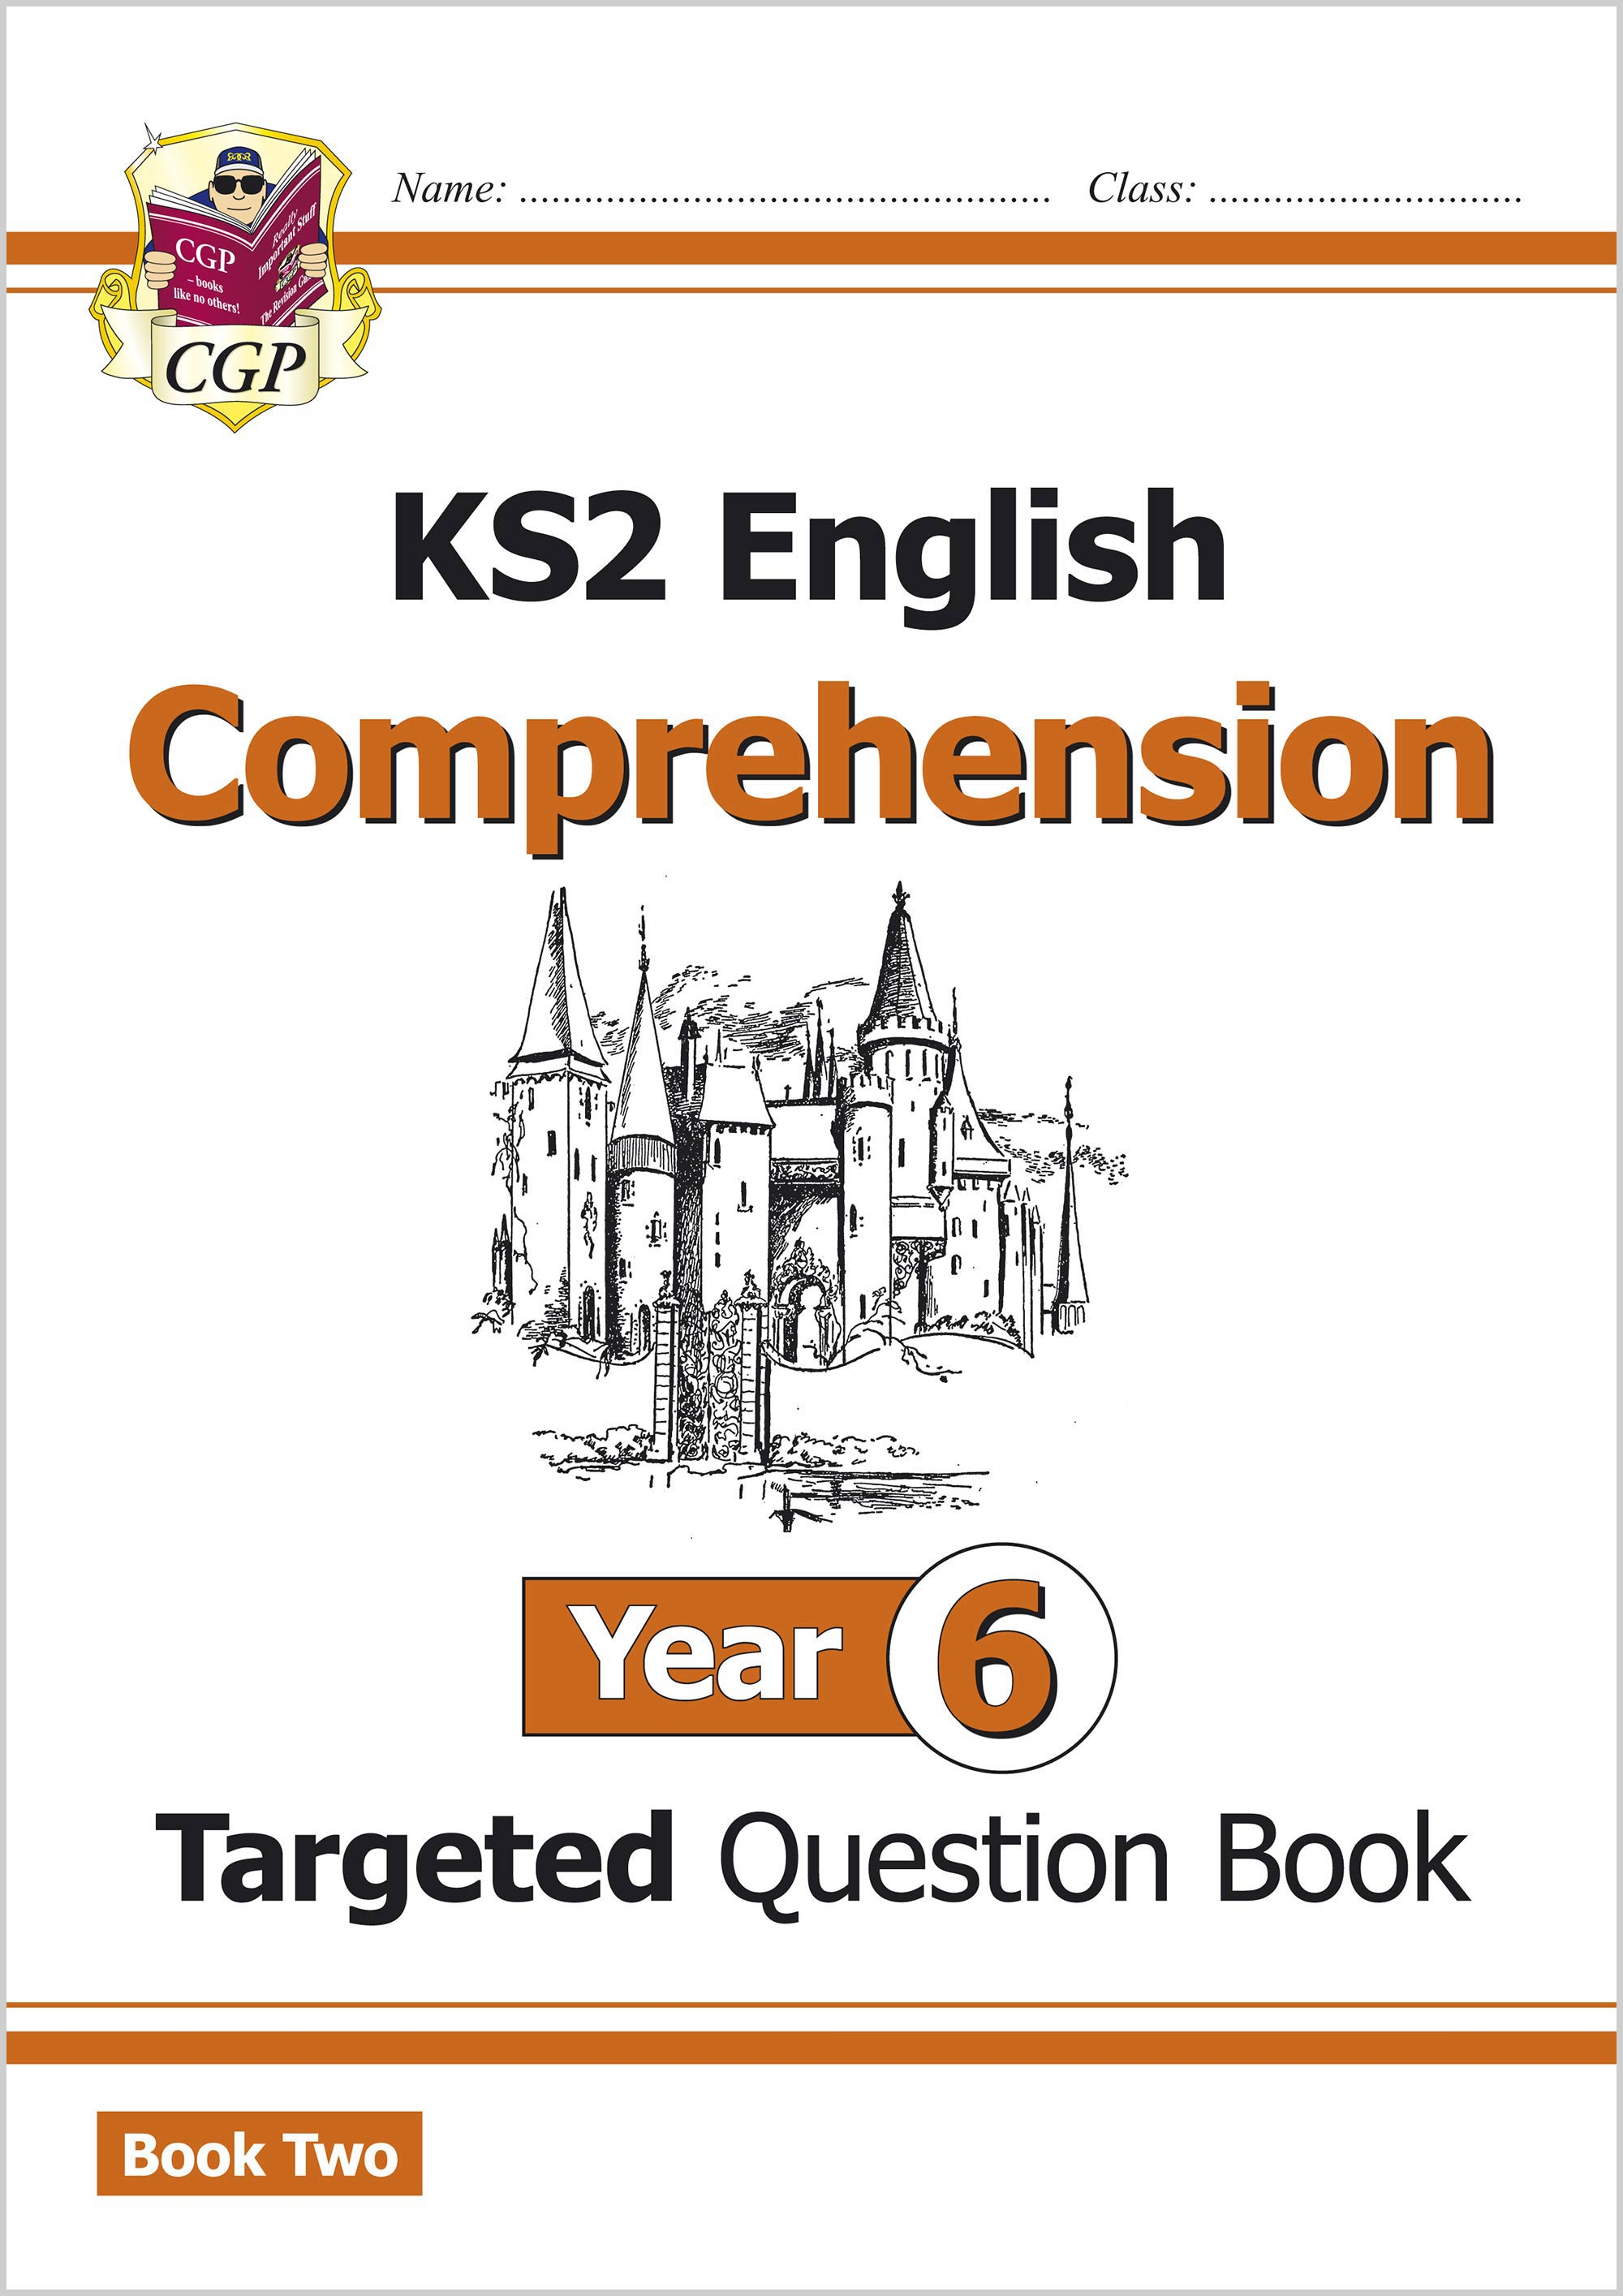 E6CW221 - KS2 English Targeted Question Book: Year 6 Comprehension - Book 2